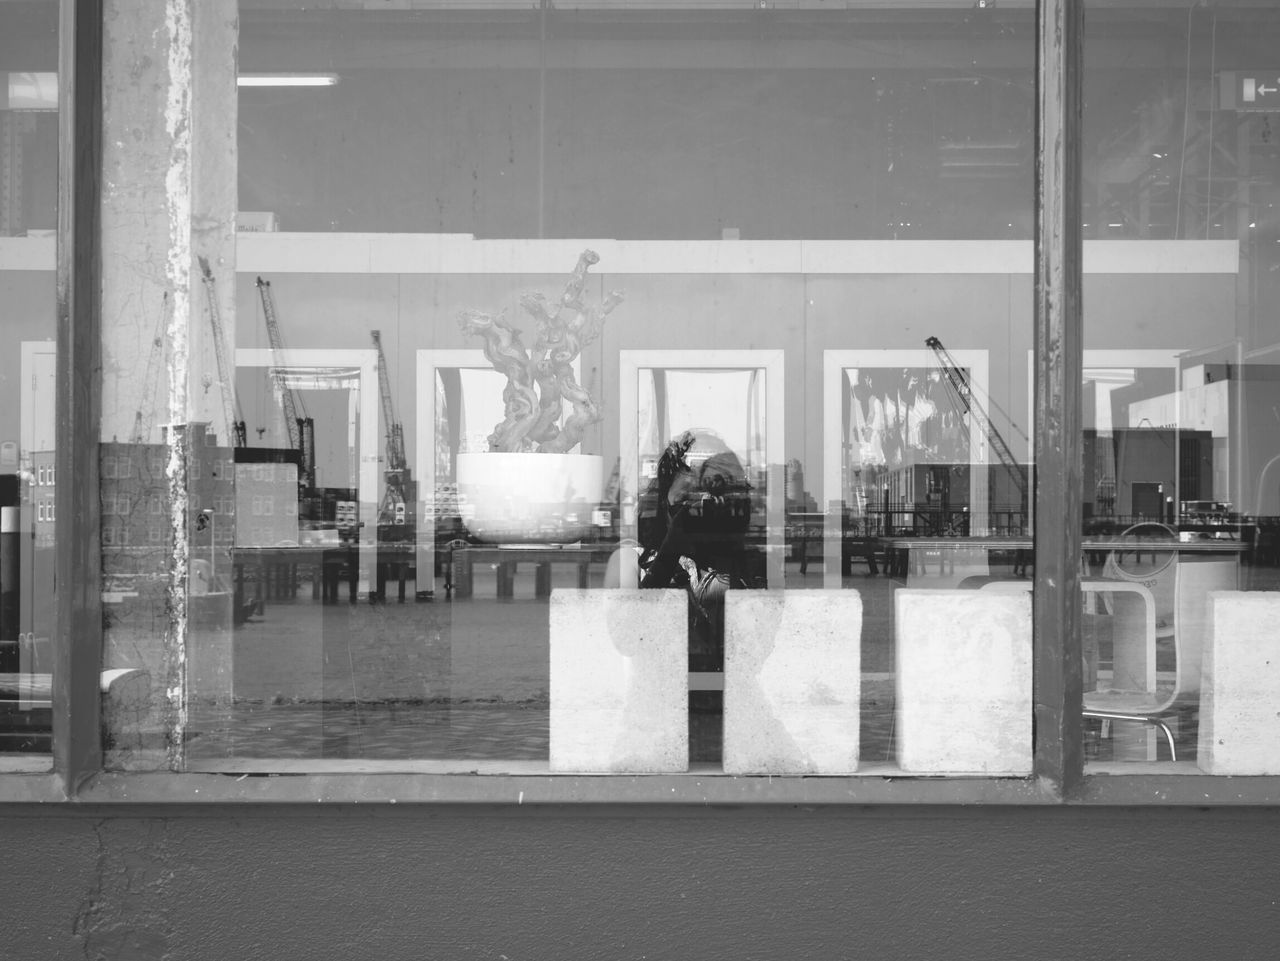 Woman Photographing Through Camera Reflecting On Glass Window